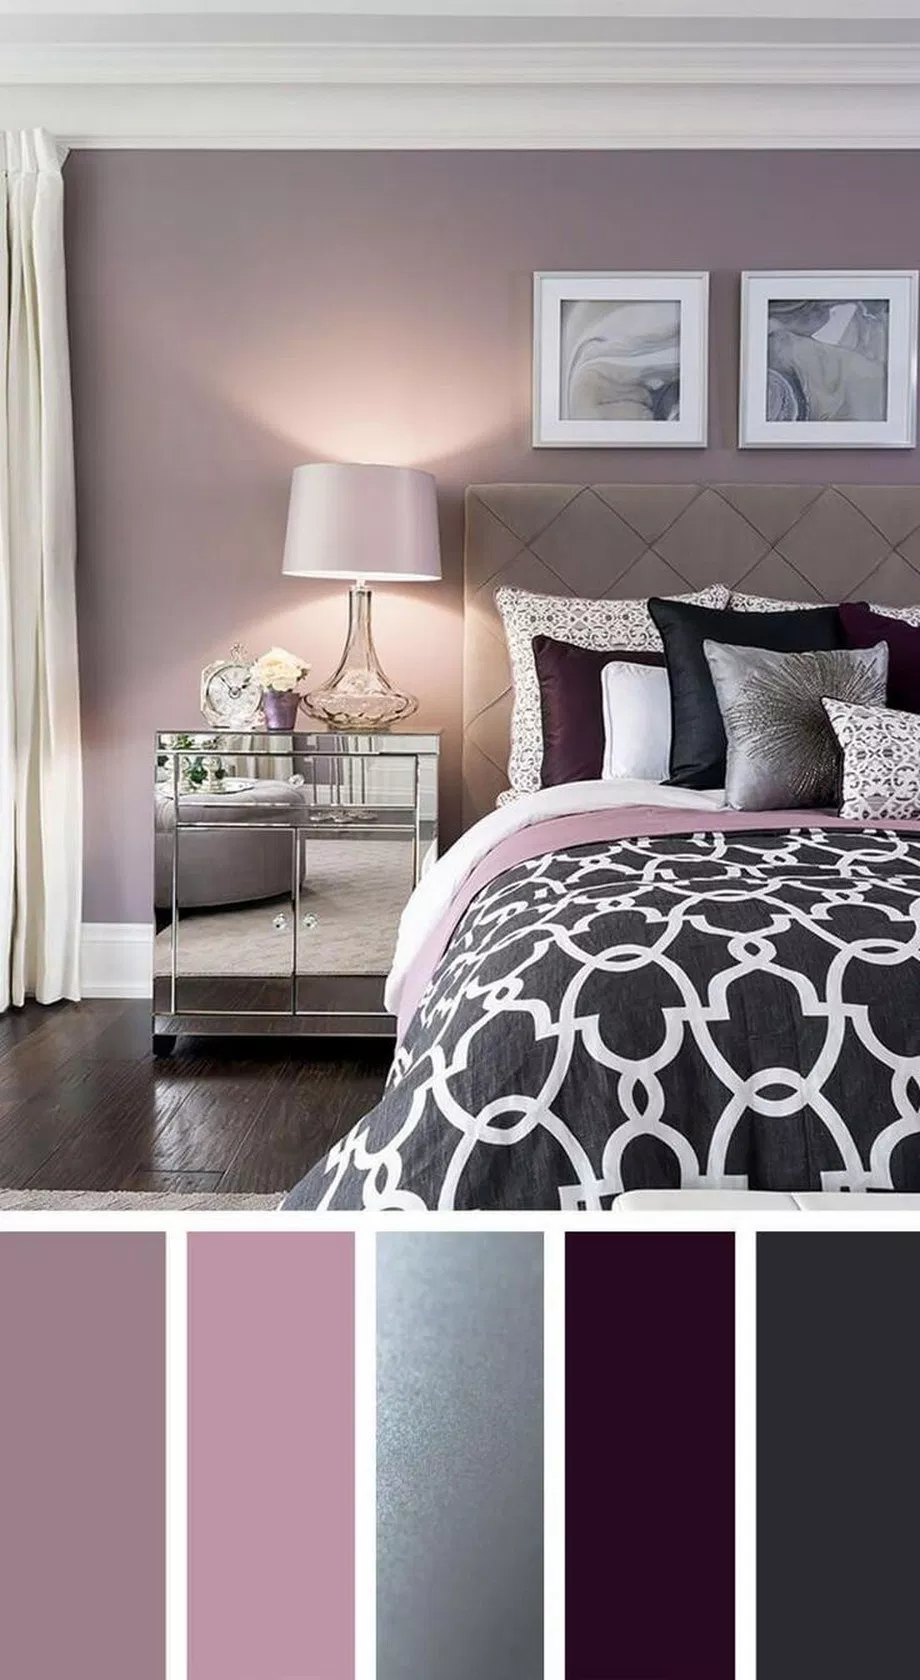 34 Romantic Bedroom Ideas For Couples Couplesbedroomideas Bedroomideas Bedroom Tendolla Beautiful Bedroom Colors Best Bedroom Colors Master Bedroom Colors